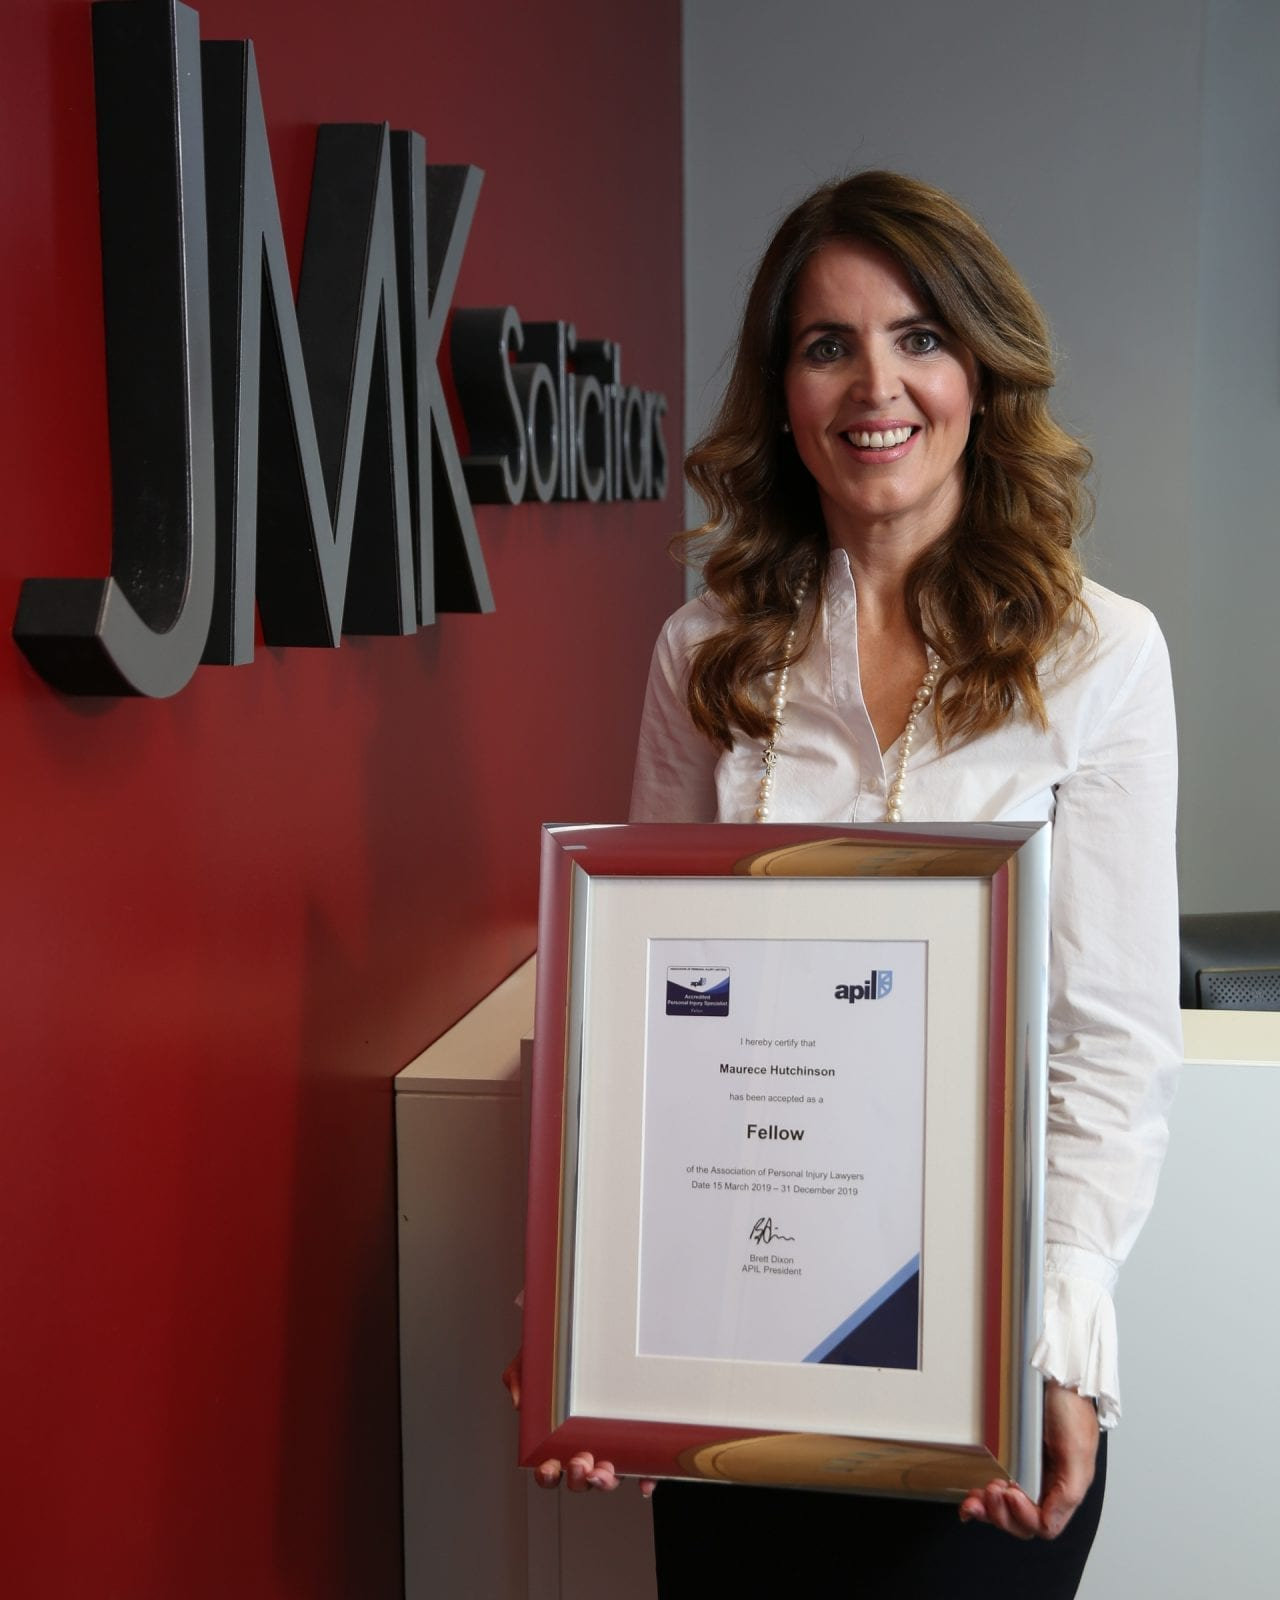 JMK Solicitors Managing Director awarded Industry APIL Fellowship